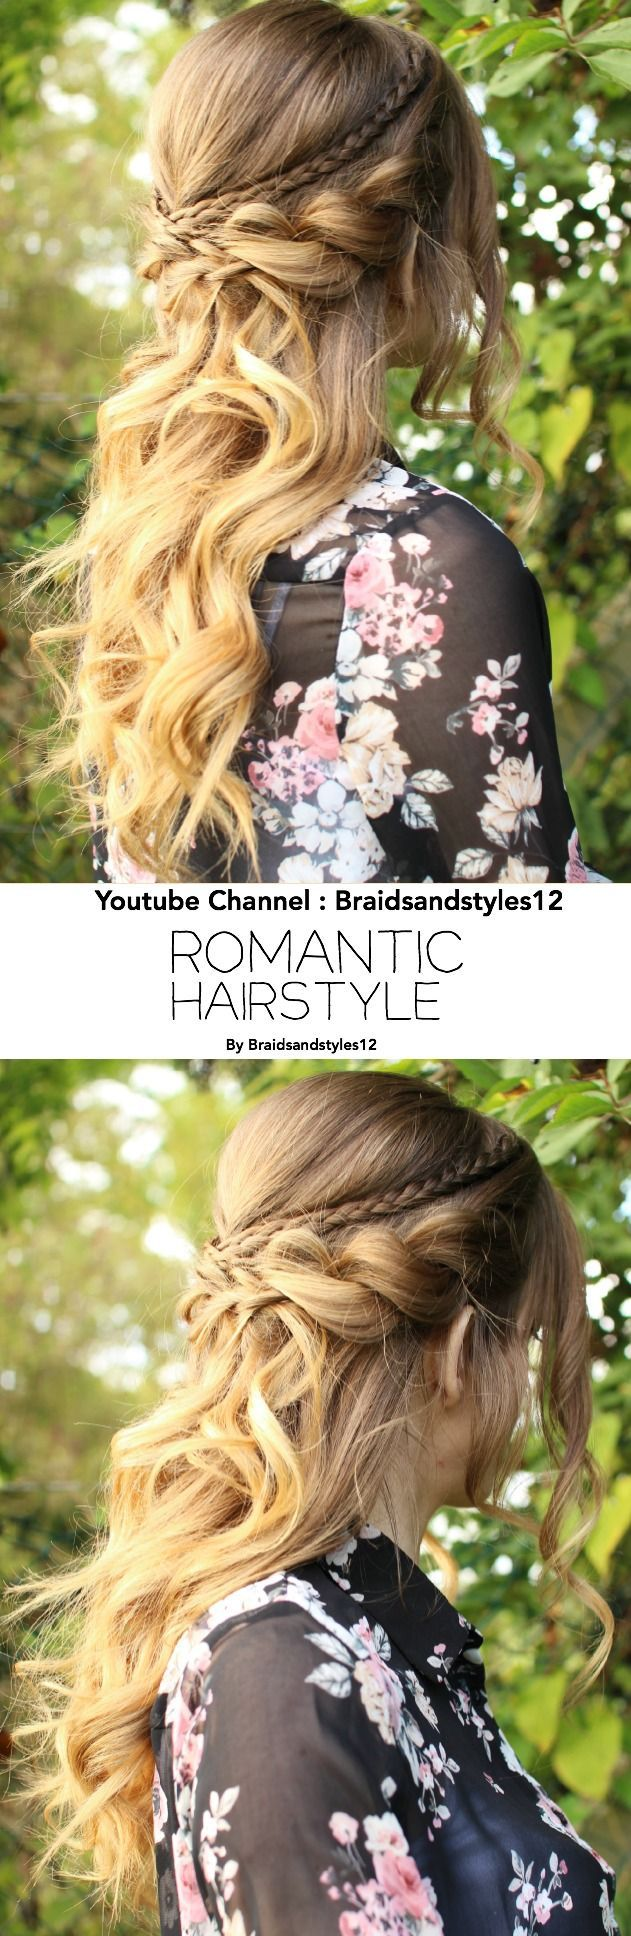 cool 5 romantic hairstyles for a date evening out